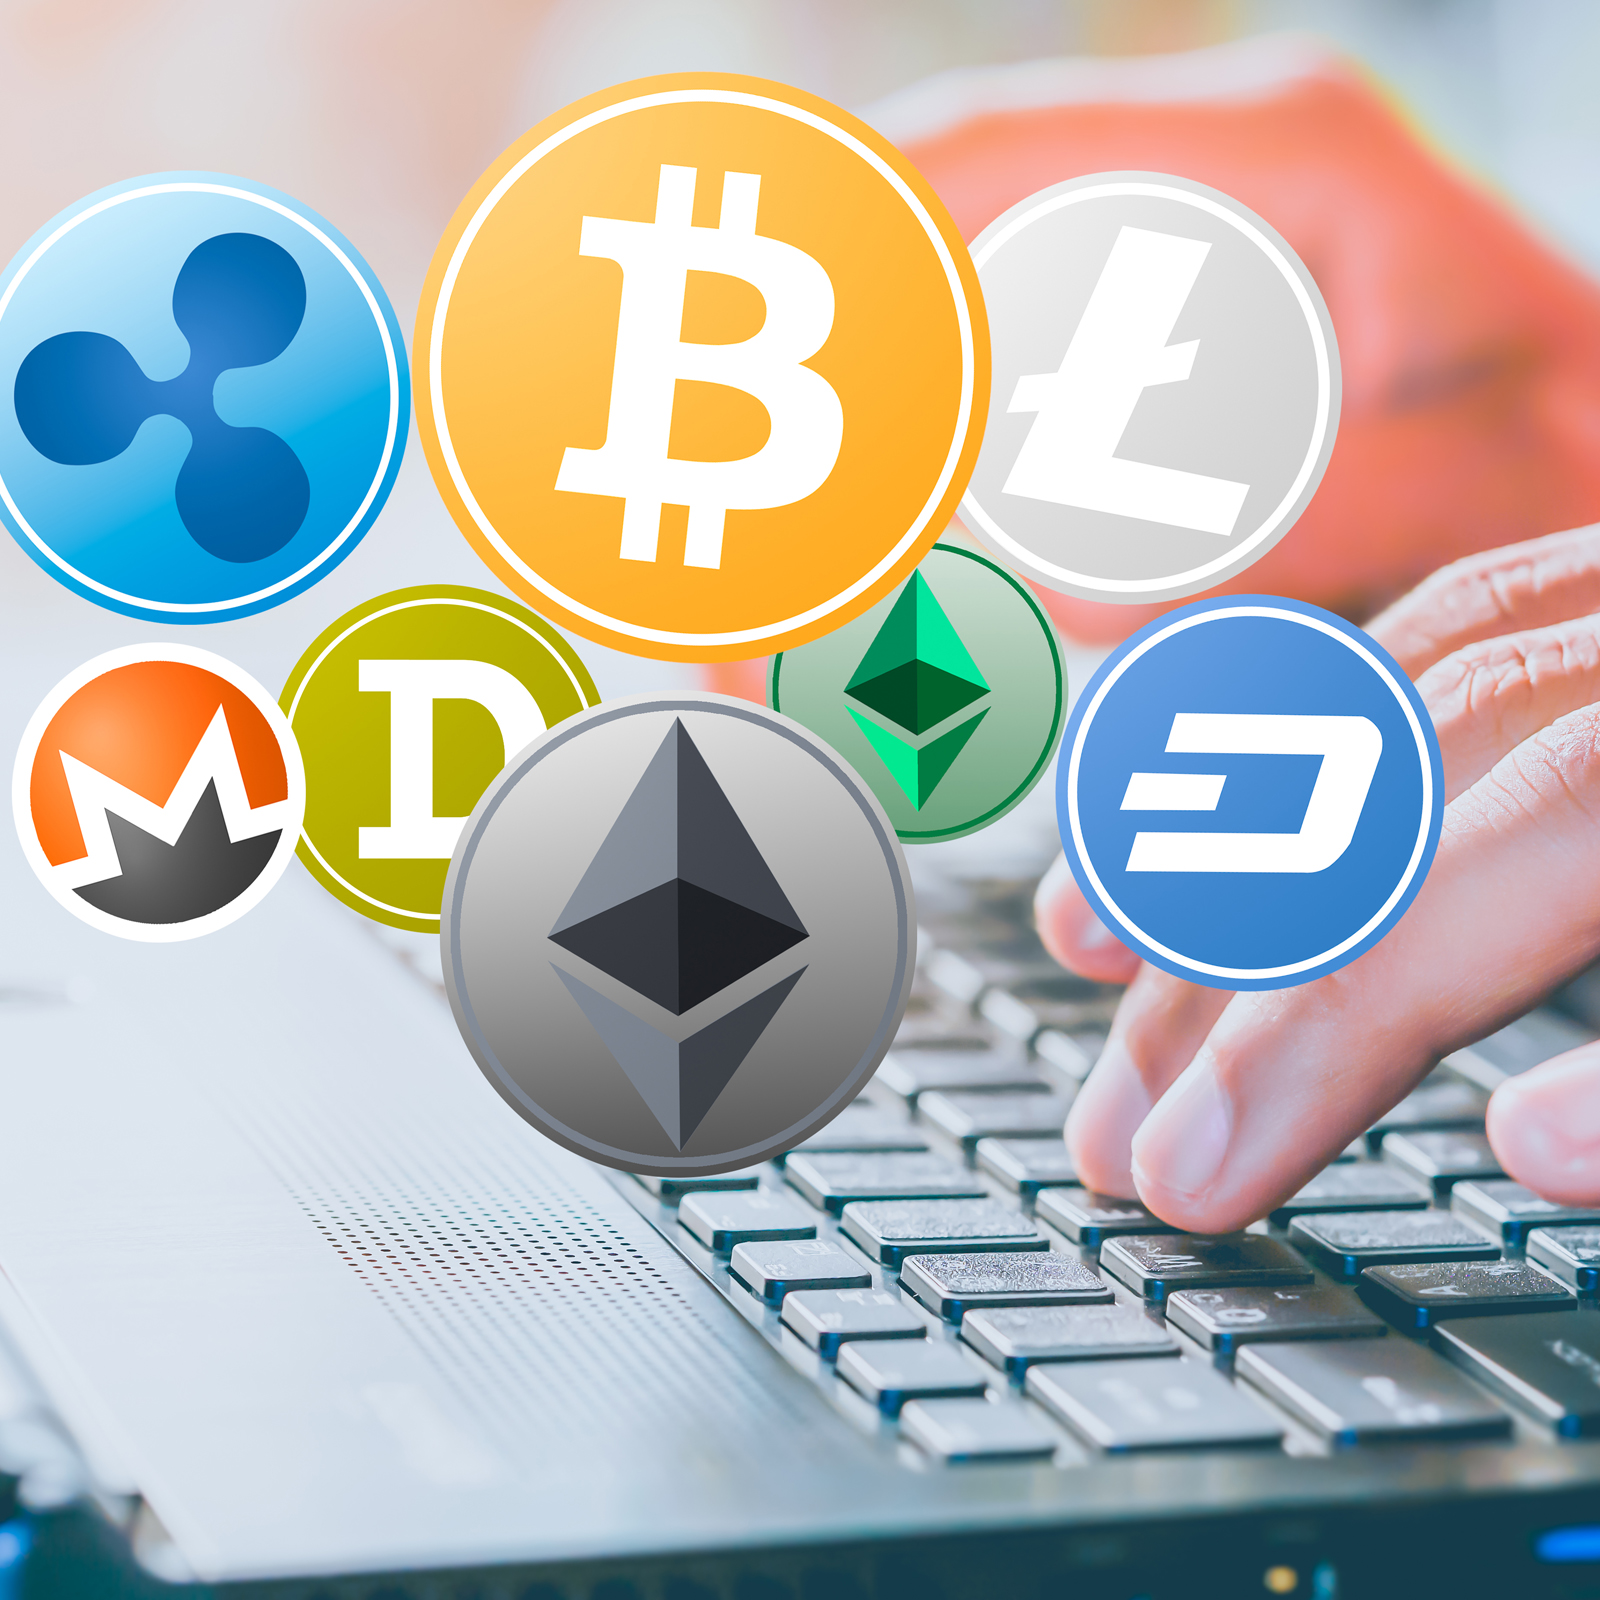 Coinmarketbook Gauges Cryptocurrencies by Buy Support Rather Than Market Cap